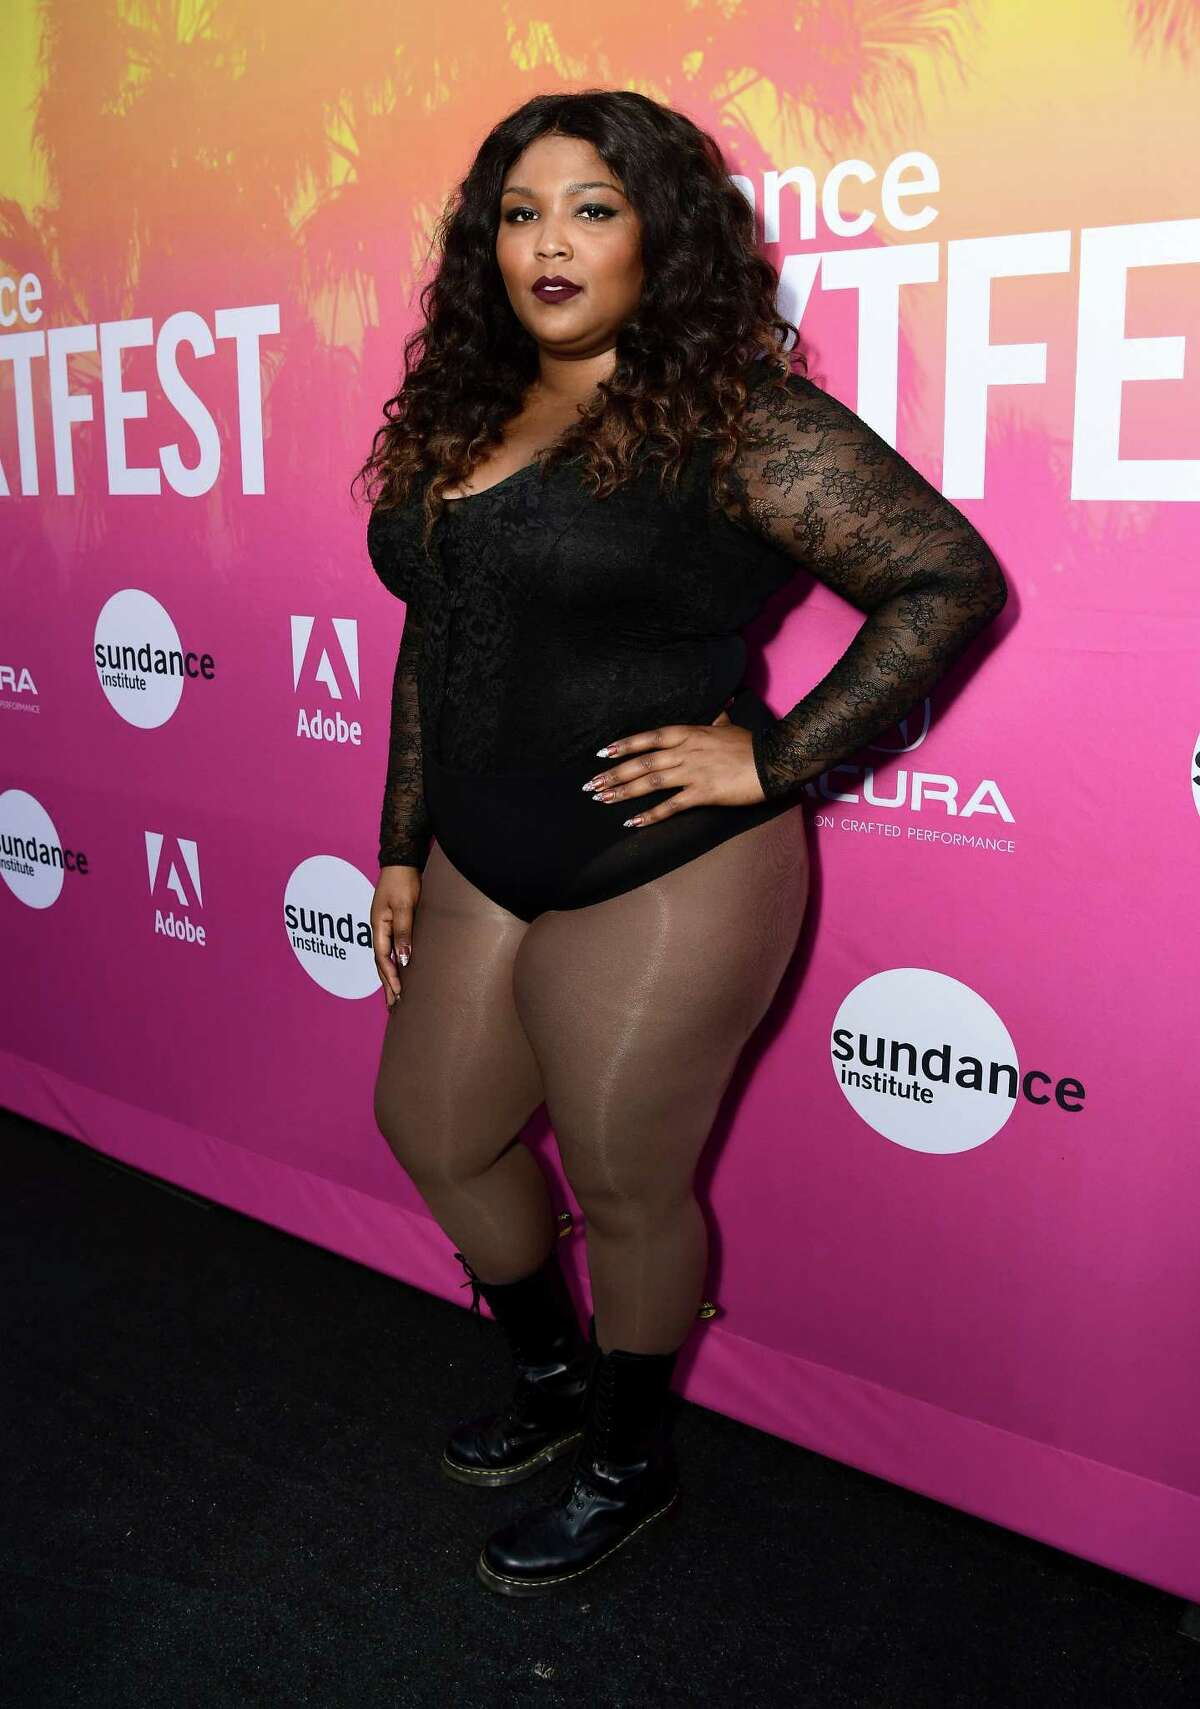 LOS ANGELES, CA - AUGUST 11: Lizzo attends 2017 Sundance NEXT FEST at The Theater at The Ace Hotel on August 11, 2017 in Los Angeles, California.